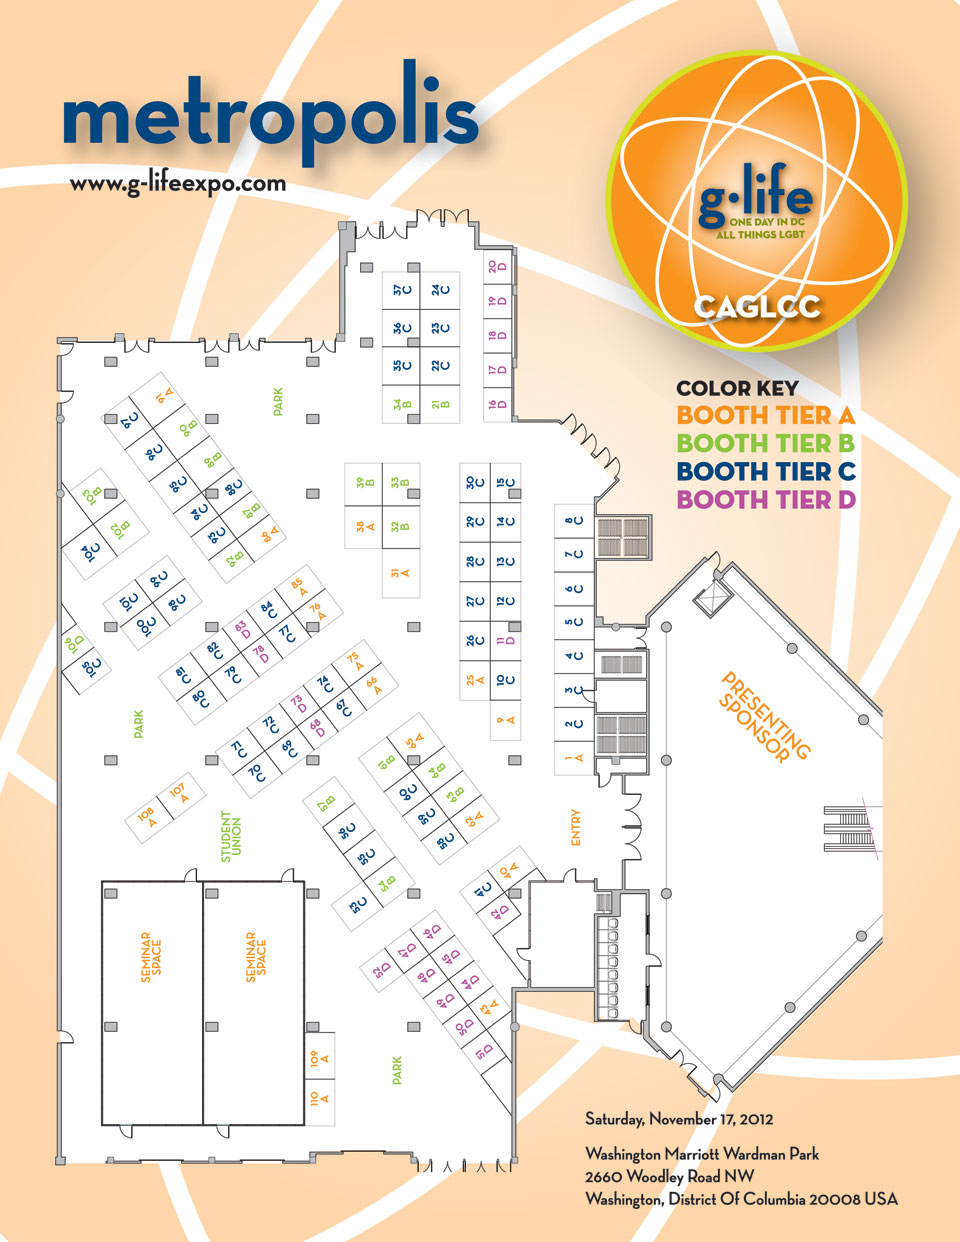 g.life Venue Map for 2012 Photo by